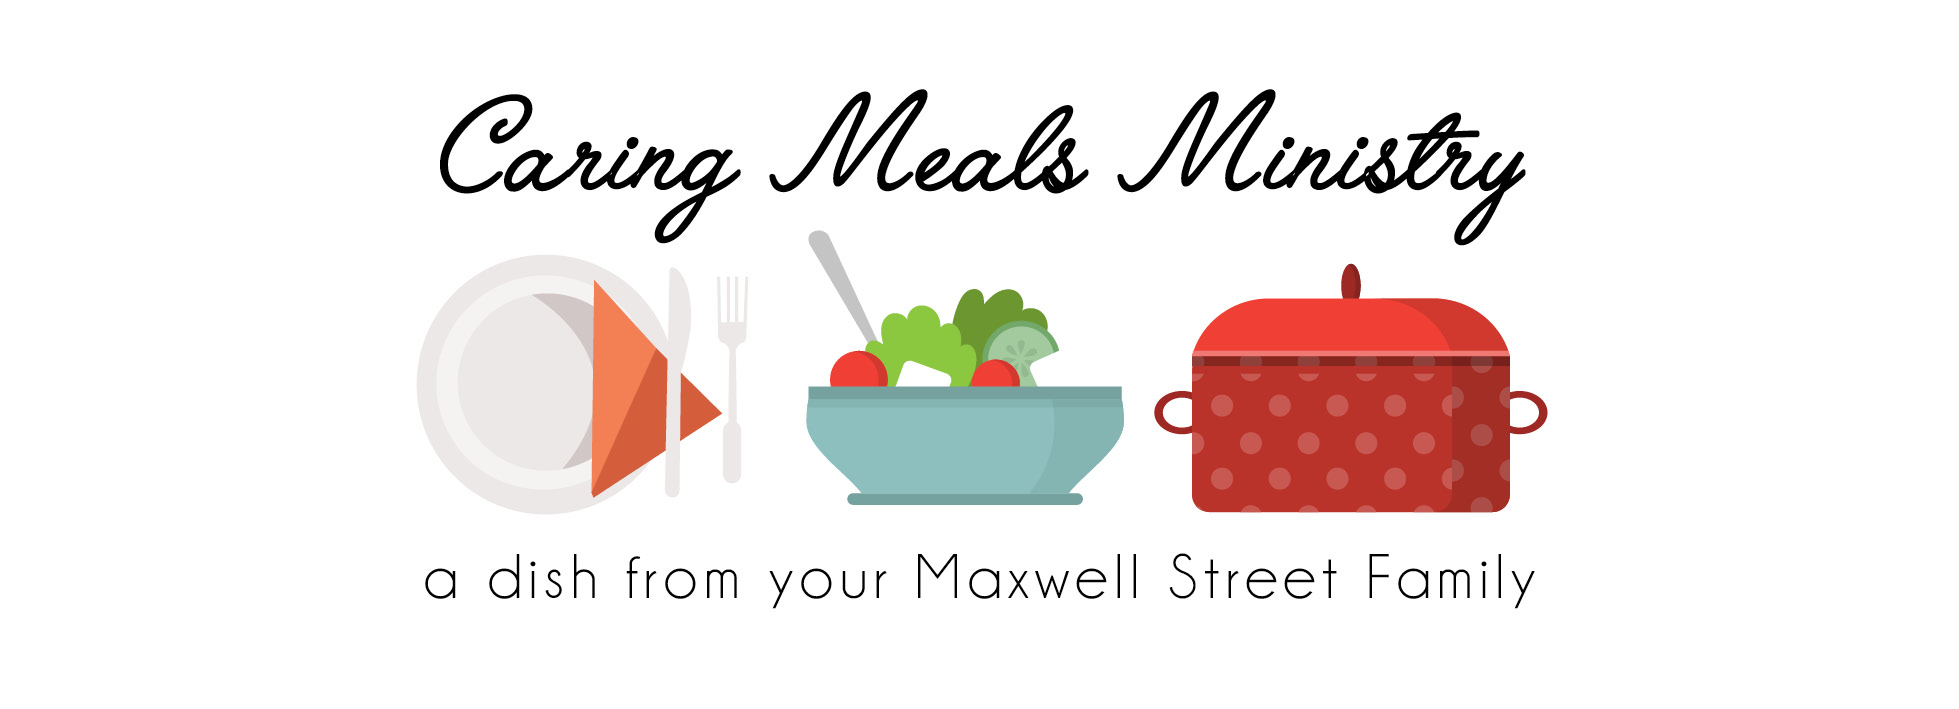 Caring Meals Ministry2